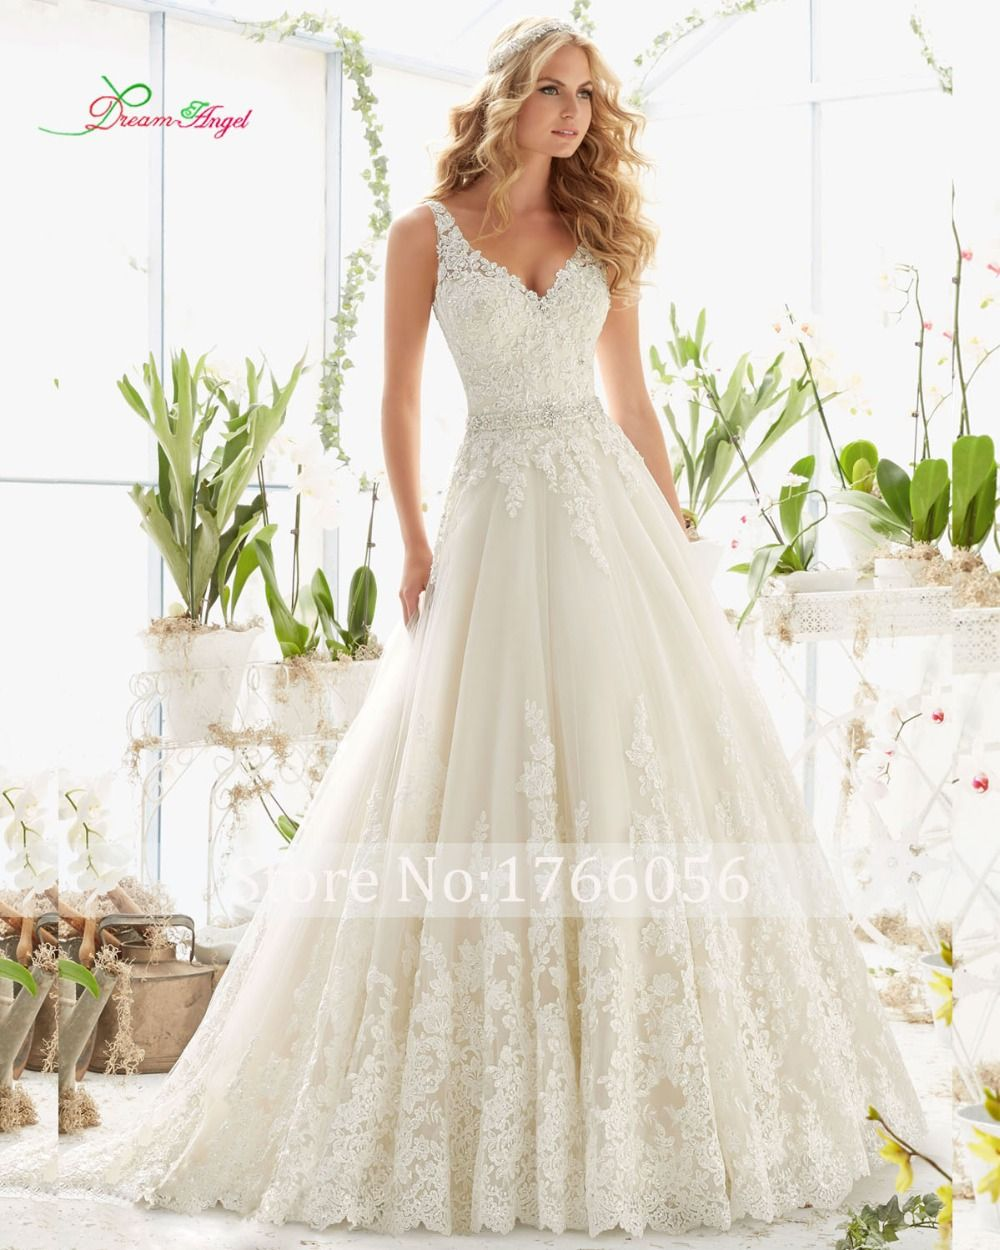 Big girl wedding dresses  Cheap dresses for big girls Buy Quality dresses prom dress directly